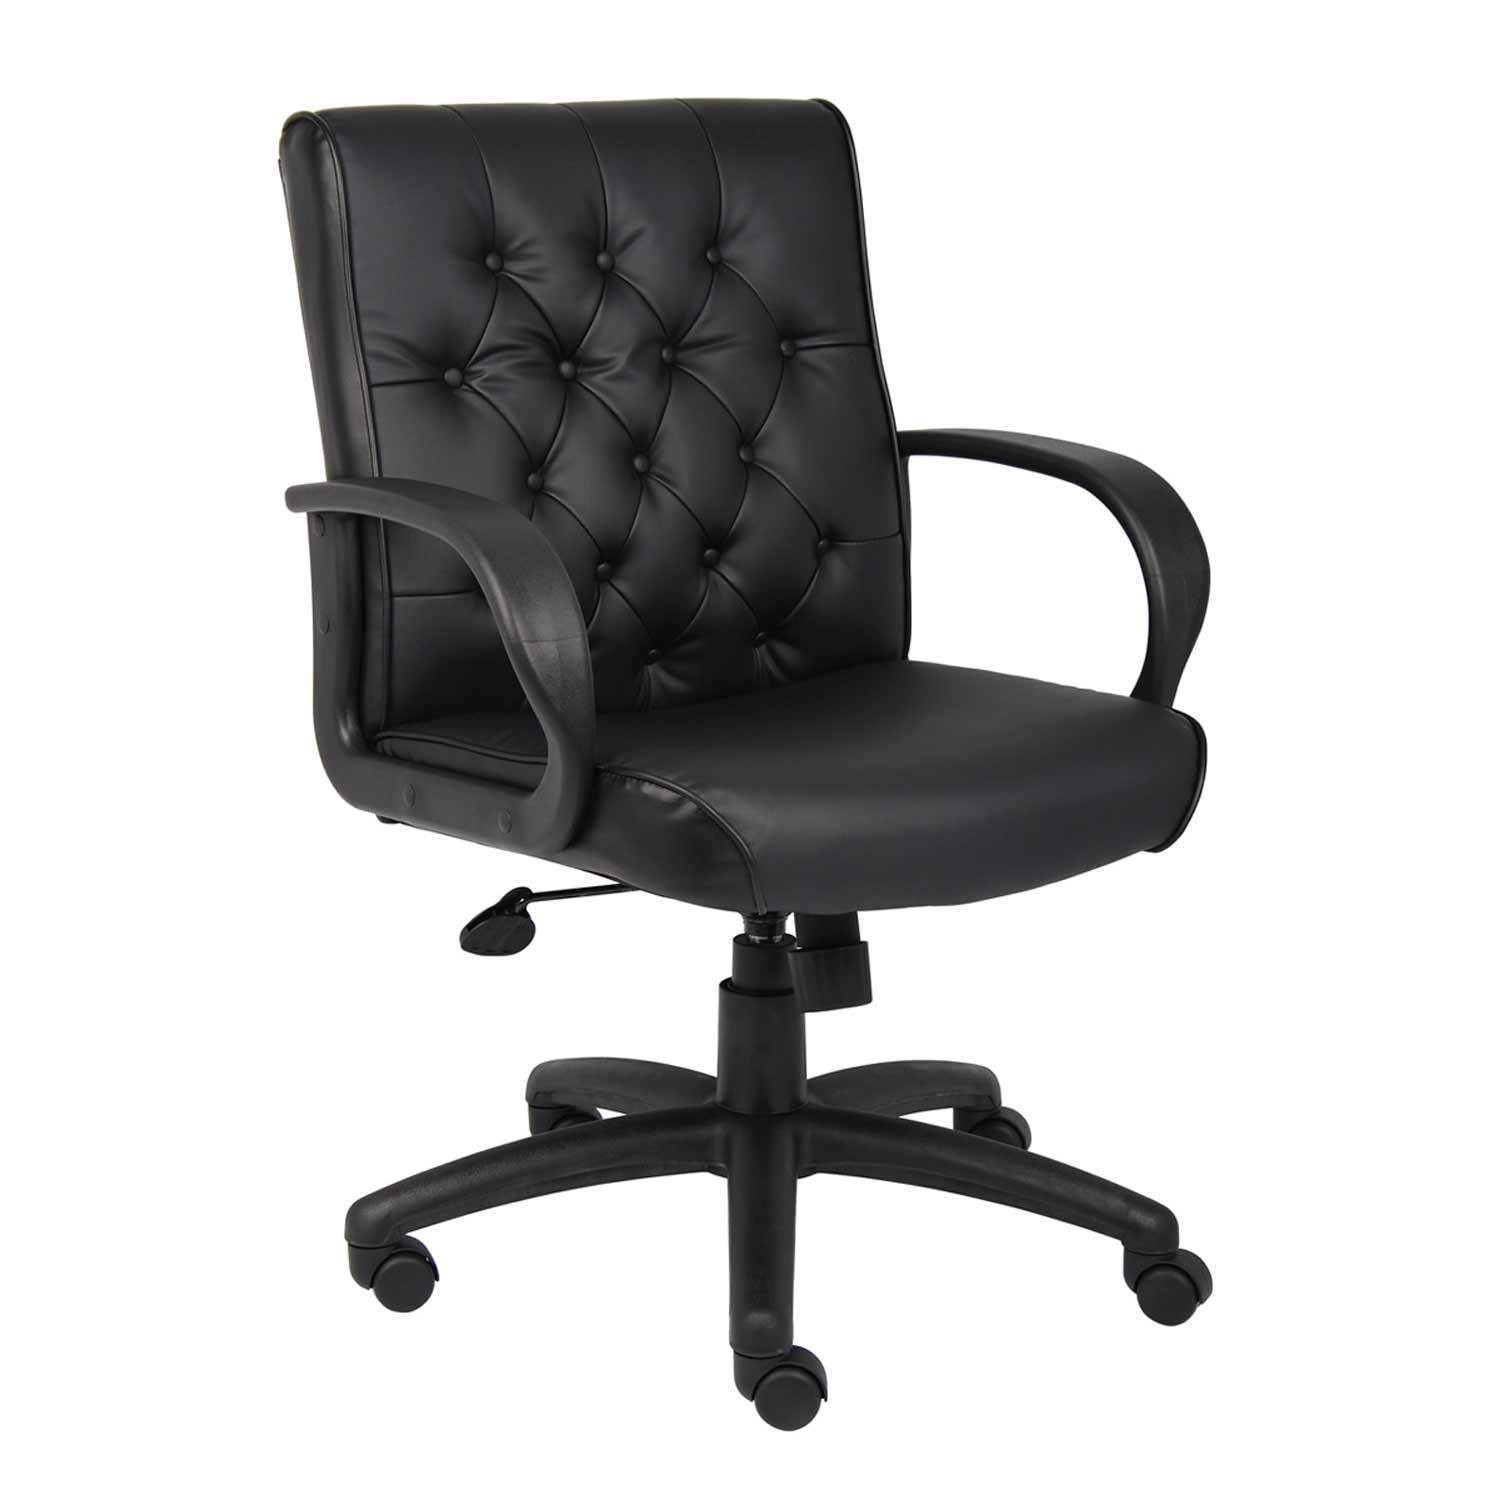 Boss black leather large office chair